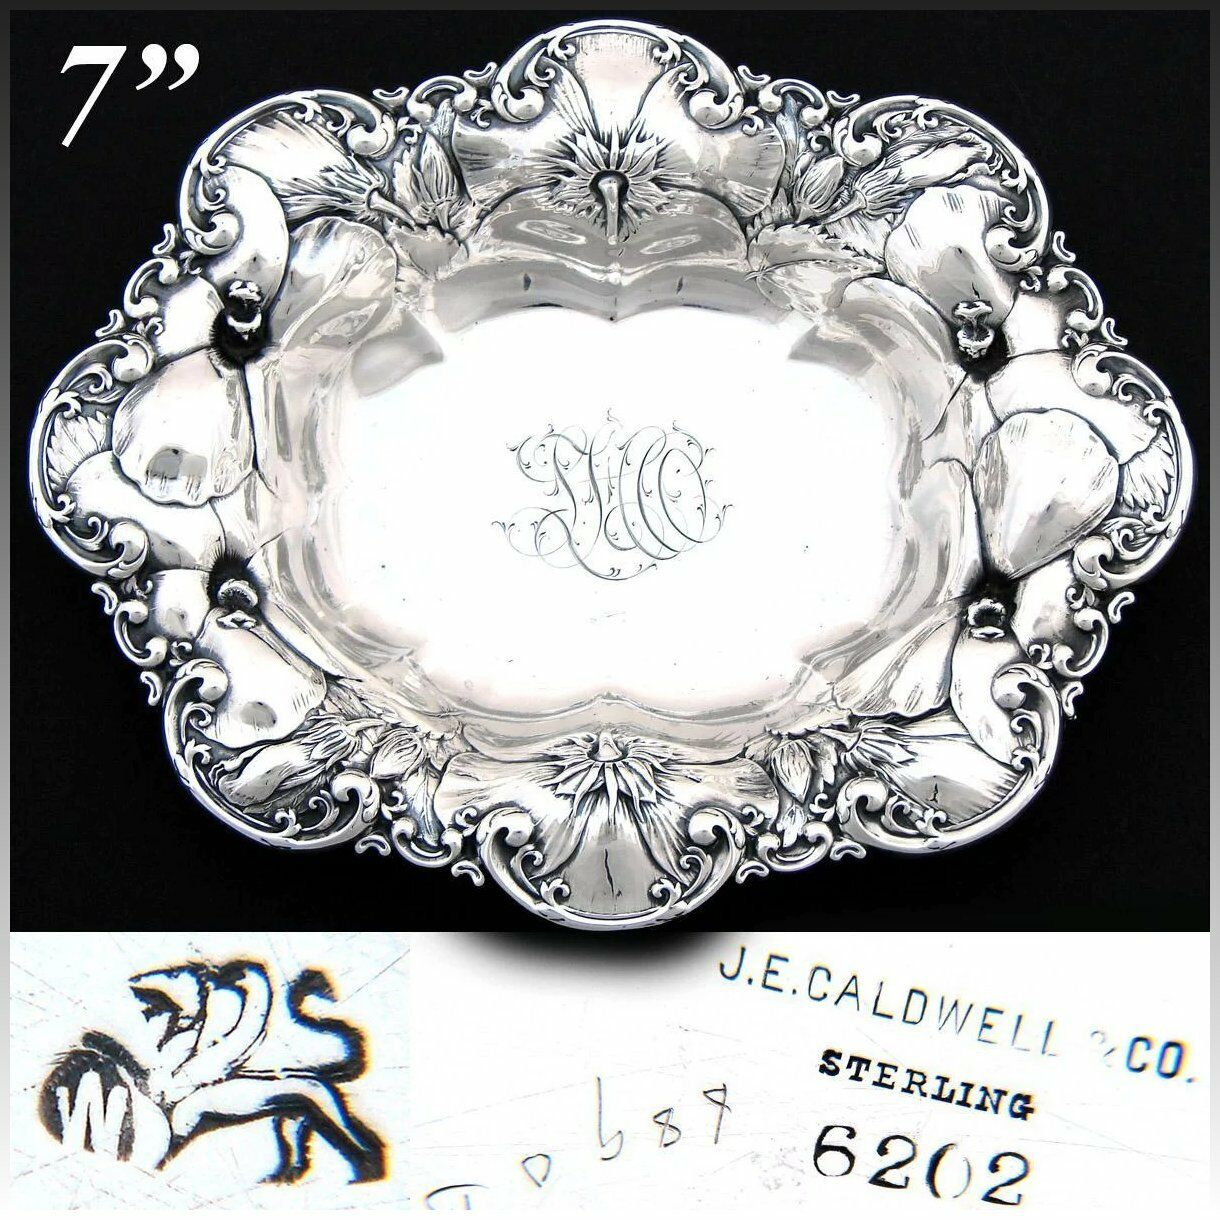 "Antique Whiting Gorham Sterling Silver7"" Bowl, Floral Bas Relief, J.E. Caldwell"